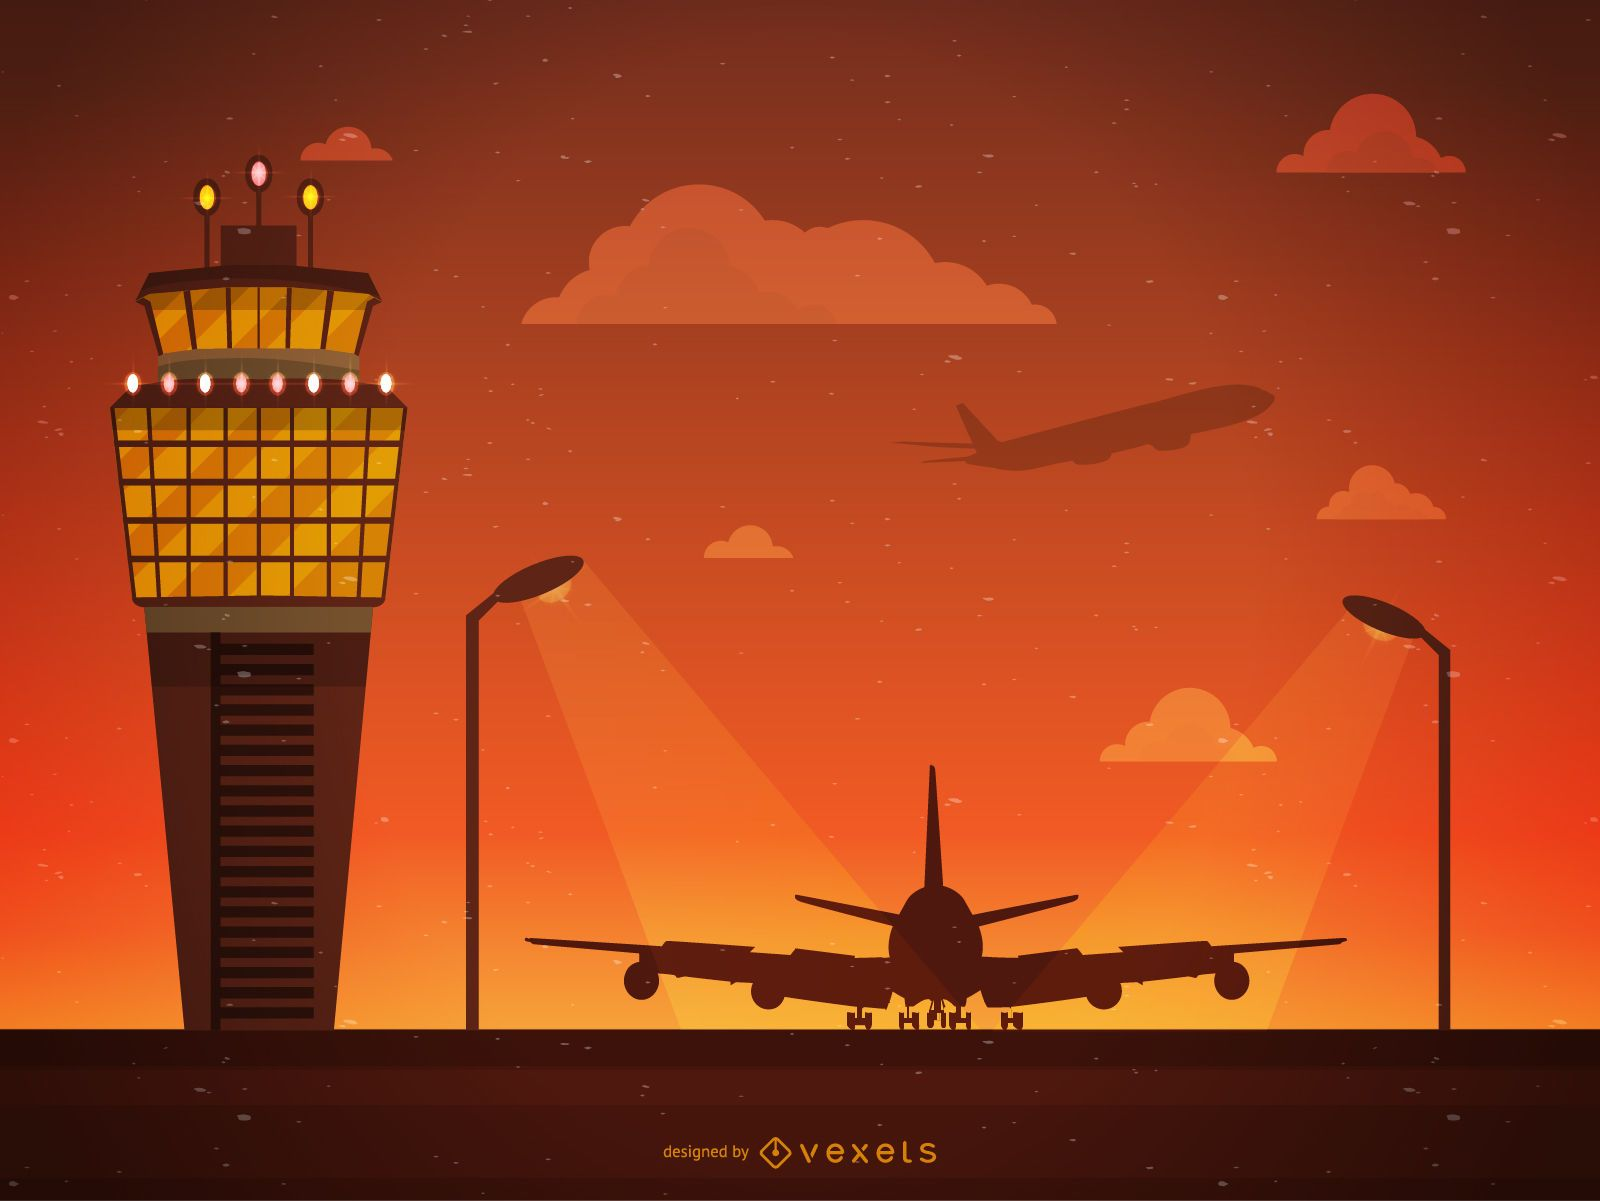 Airport control tower illustration